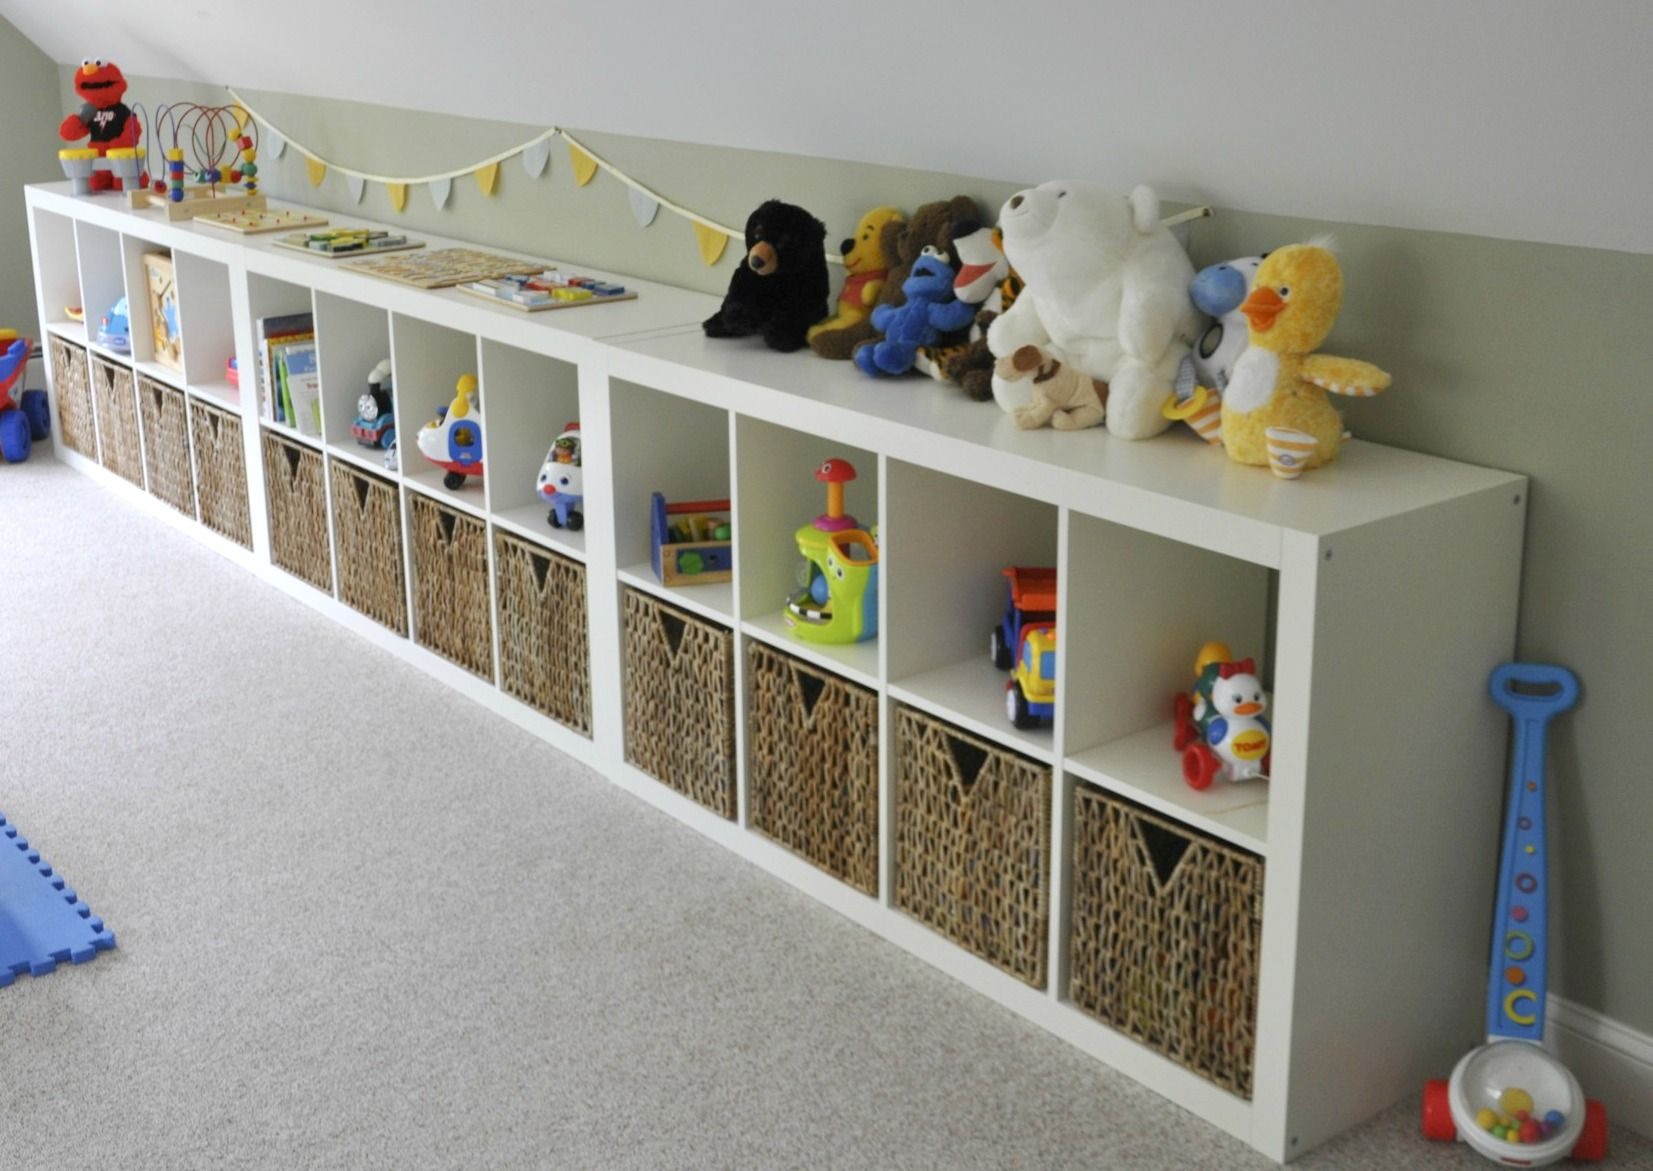 Ikea expedit playroom storage reveal basement ideas Ikea media room ideas